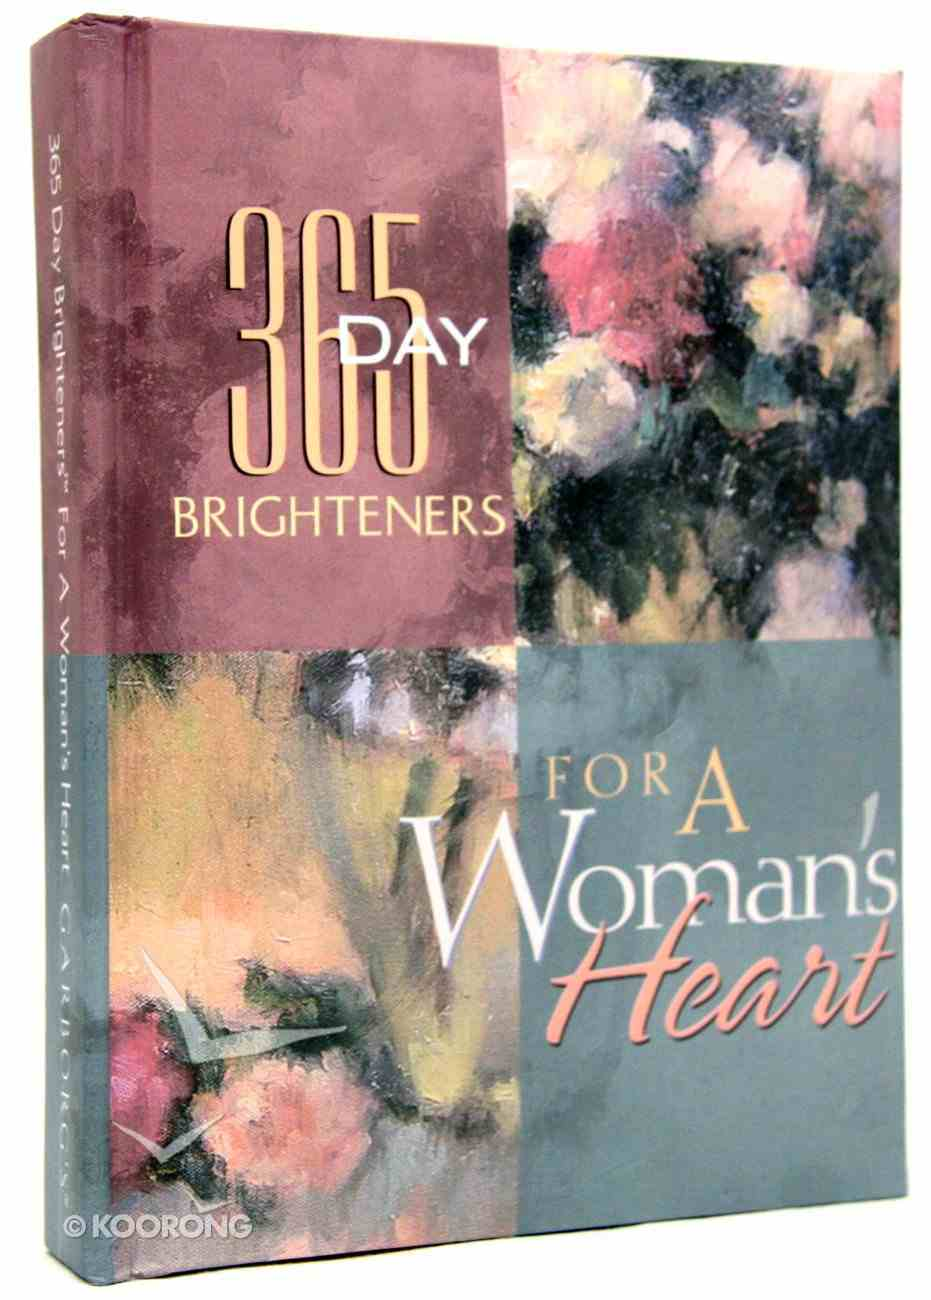 For a Woman's Heart (365 Day Brighteners Series) Hardback